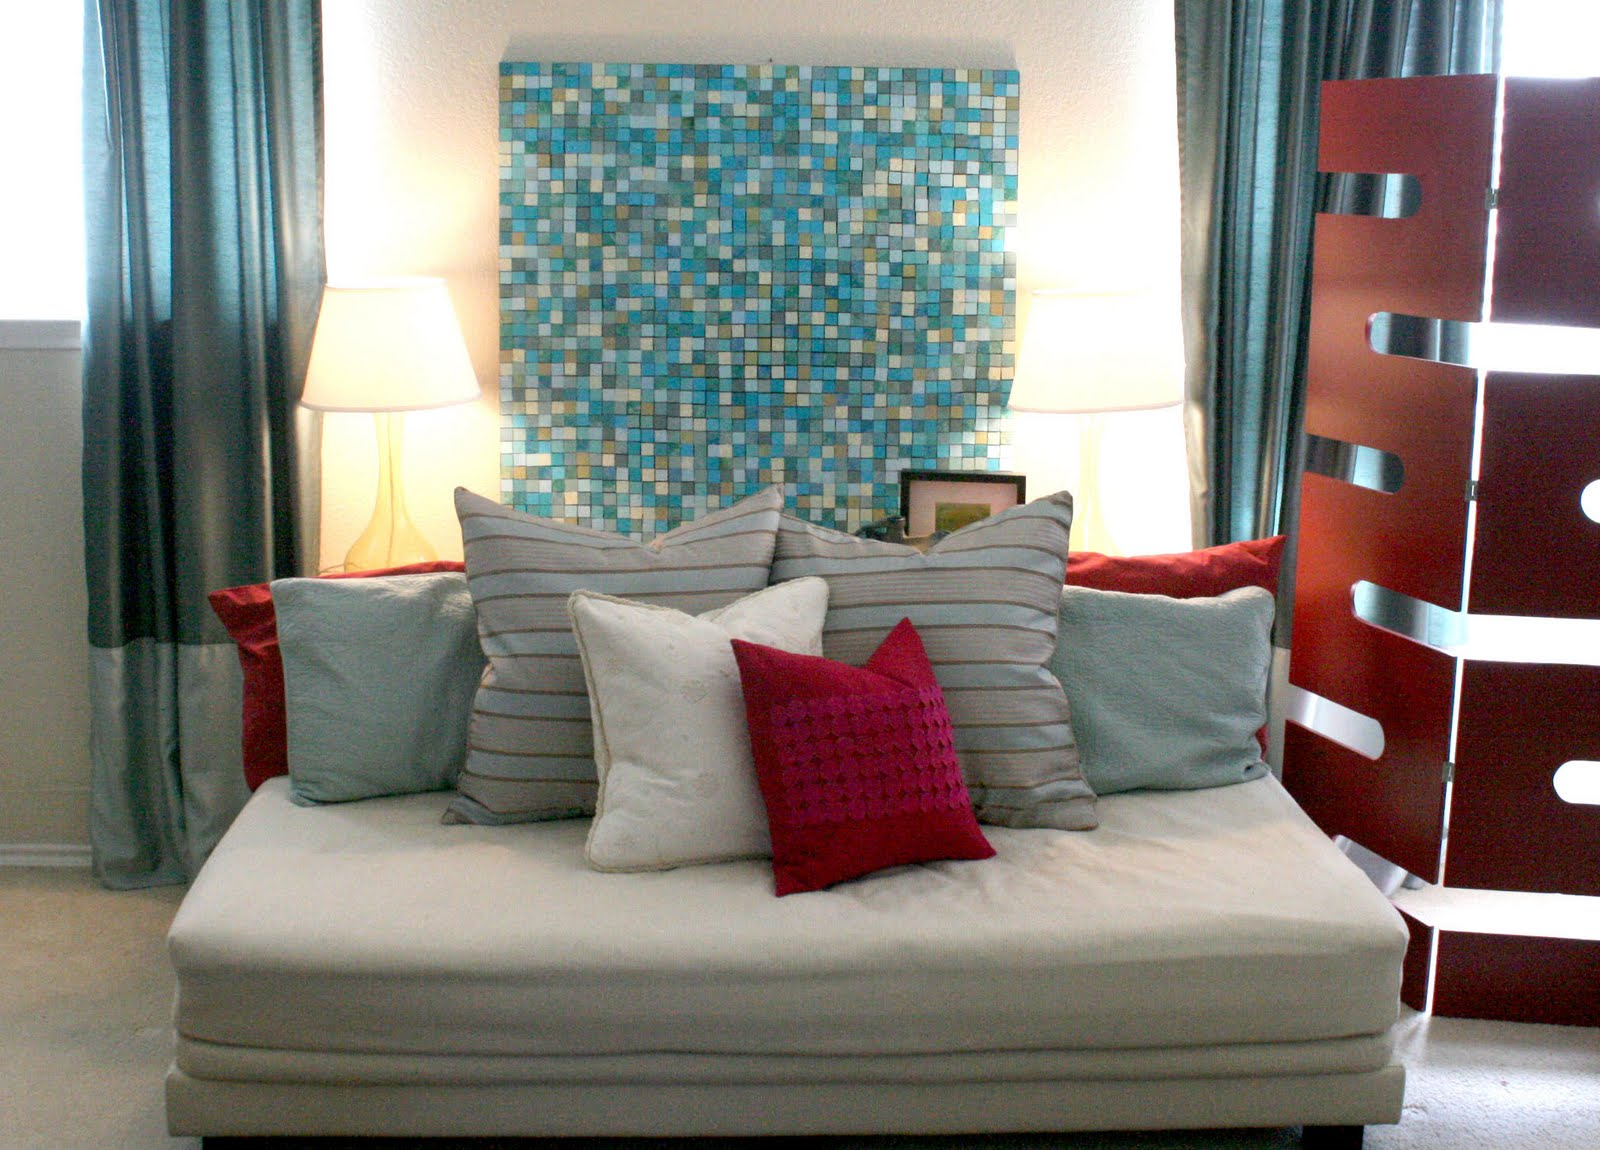 Large bedroom wall decor - Diy Mosaic Art